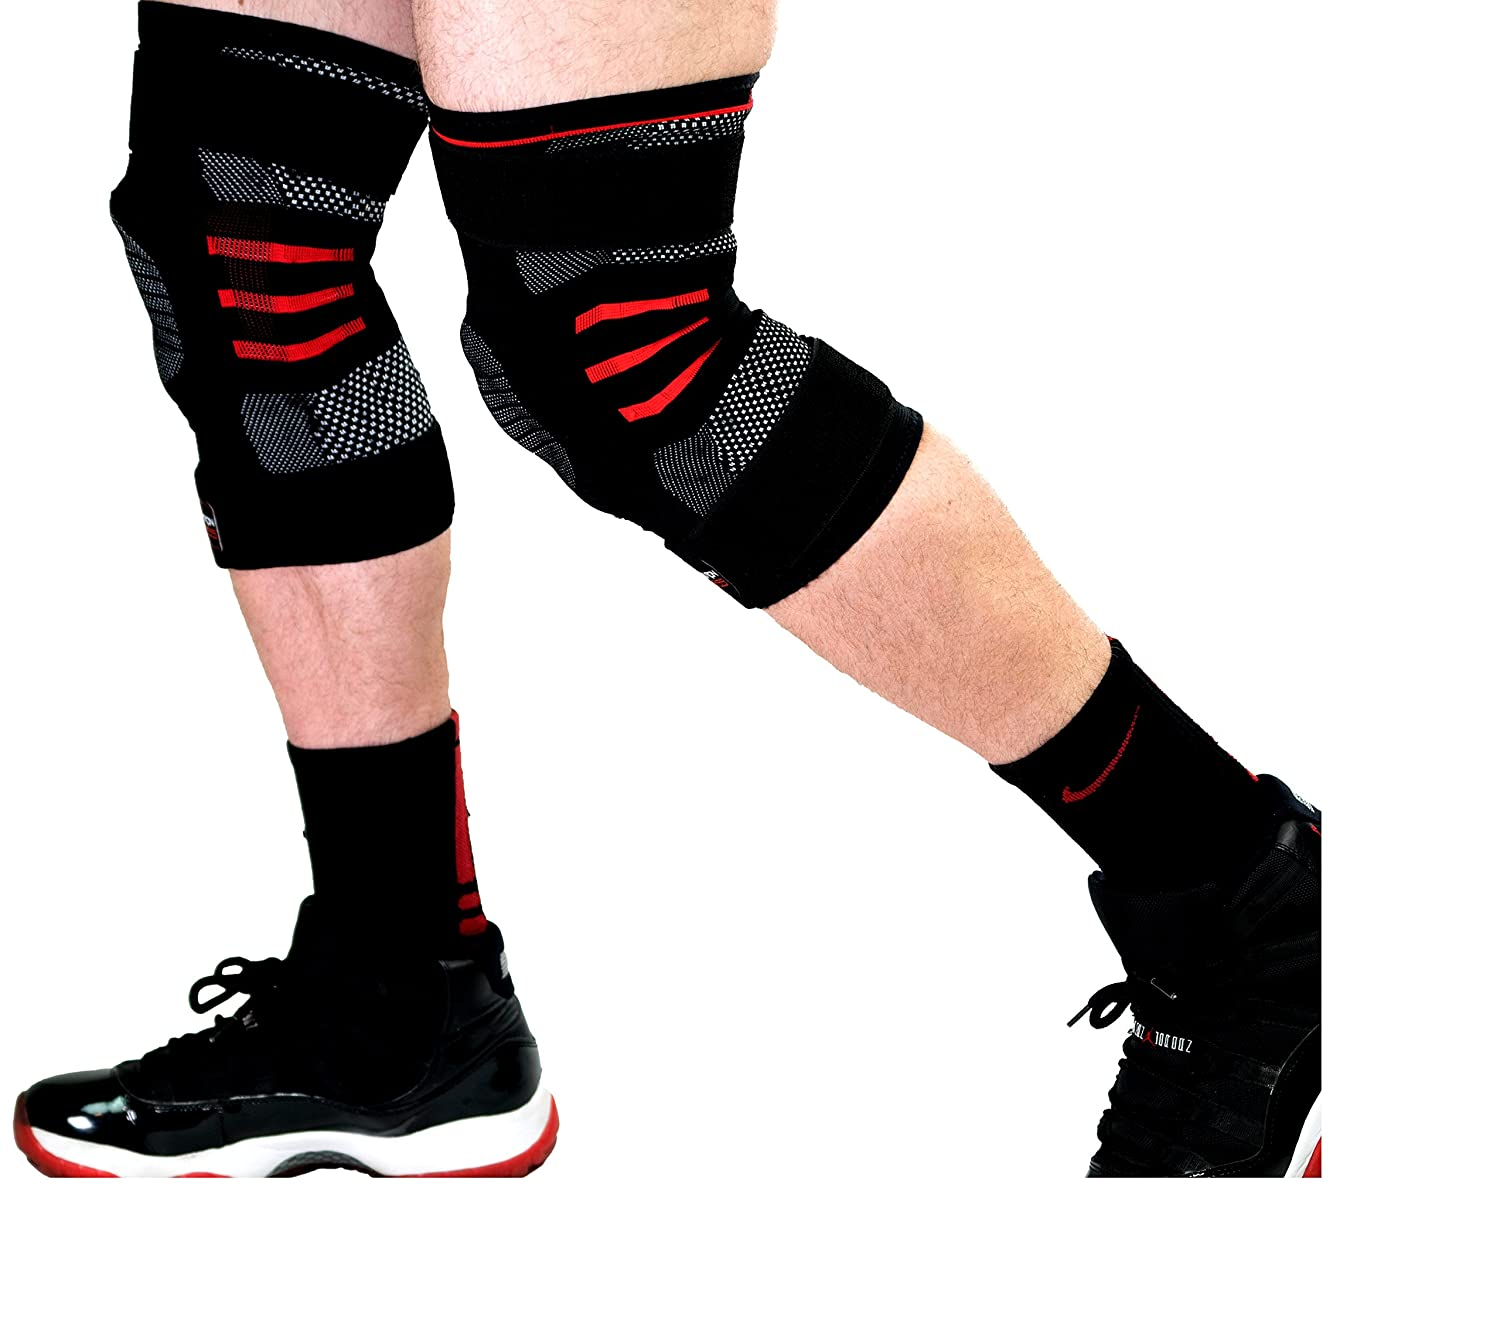 Accessories to Help Perfect Your Squats - Dark Iron Fitness Knee Sleeves